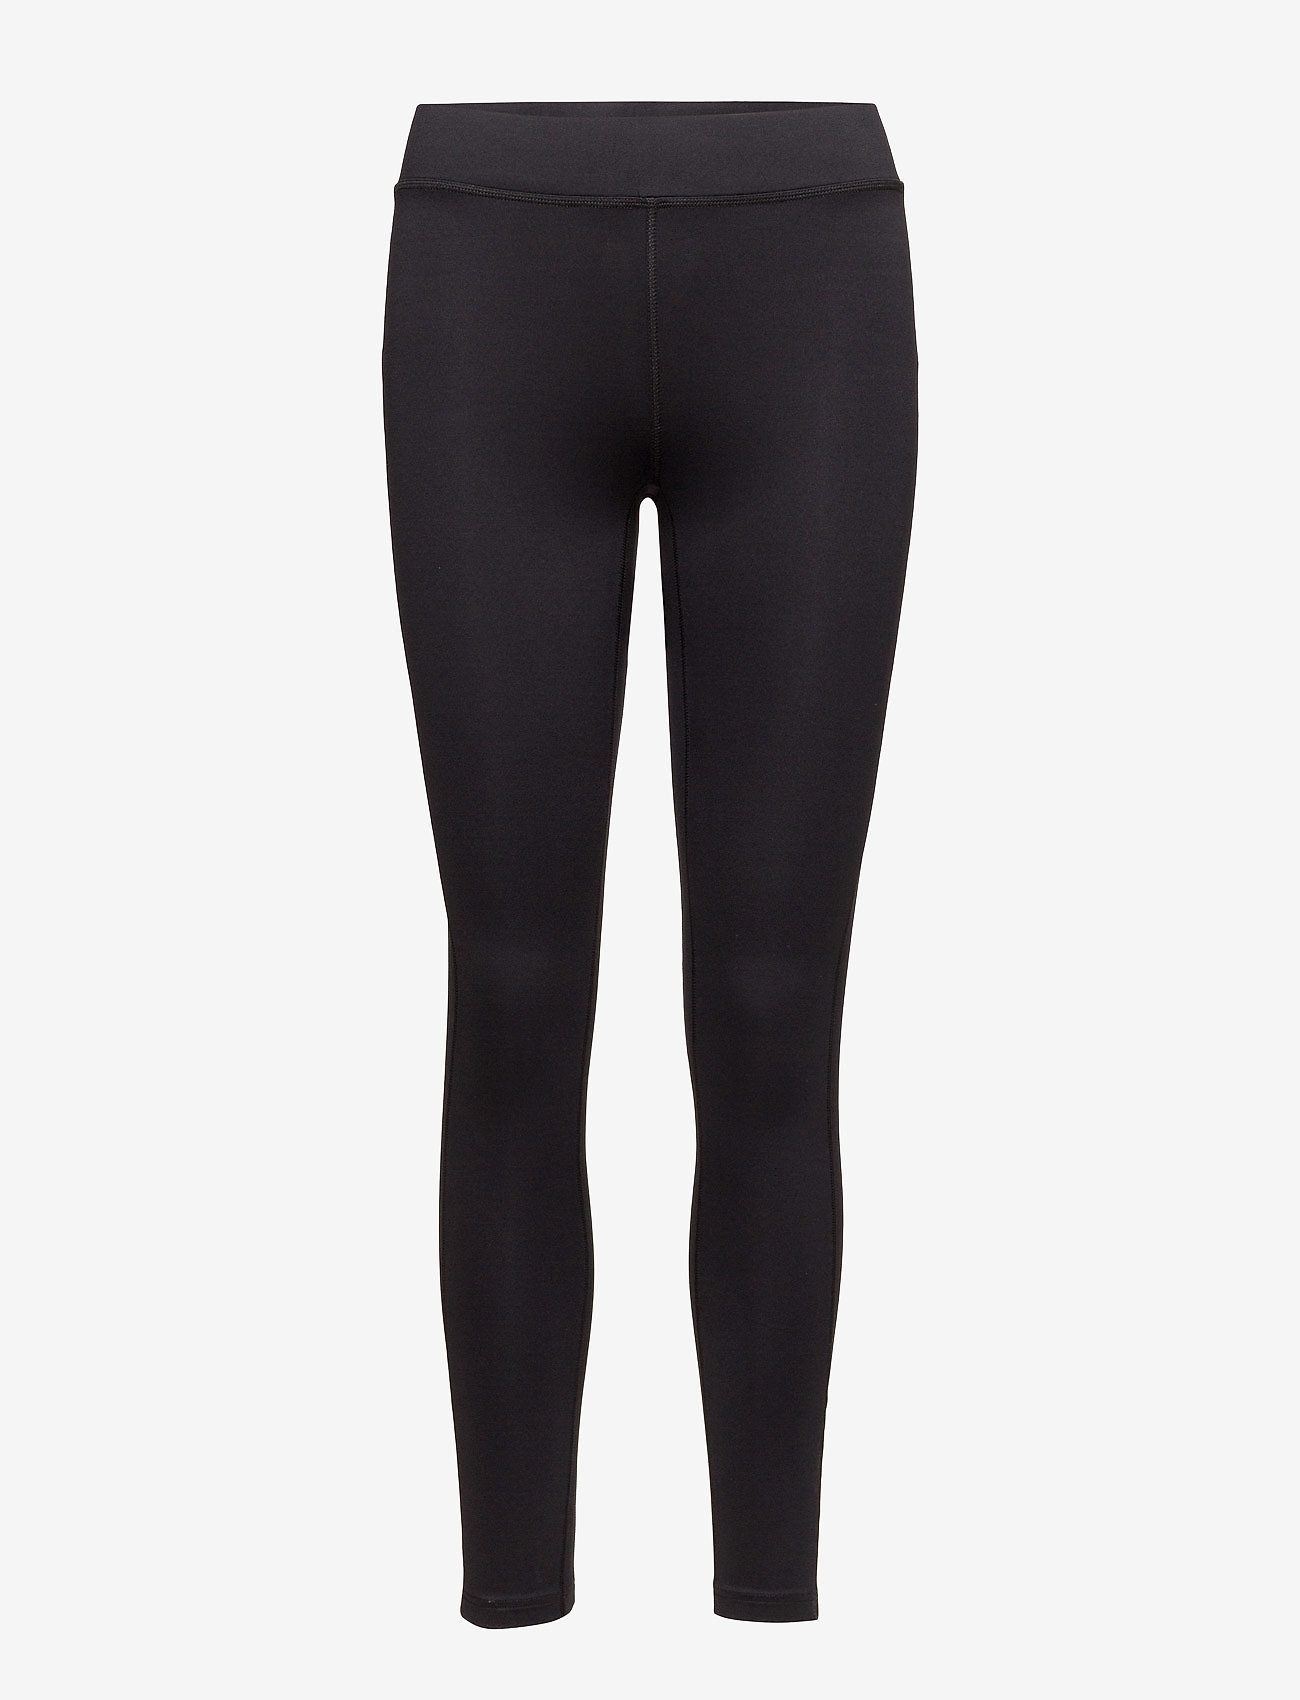 Essentials Tights (Black) (419.30 kr) - Casall